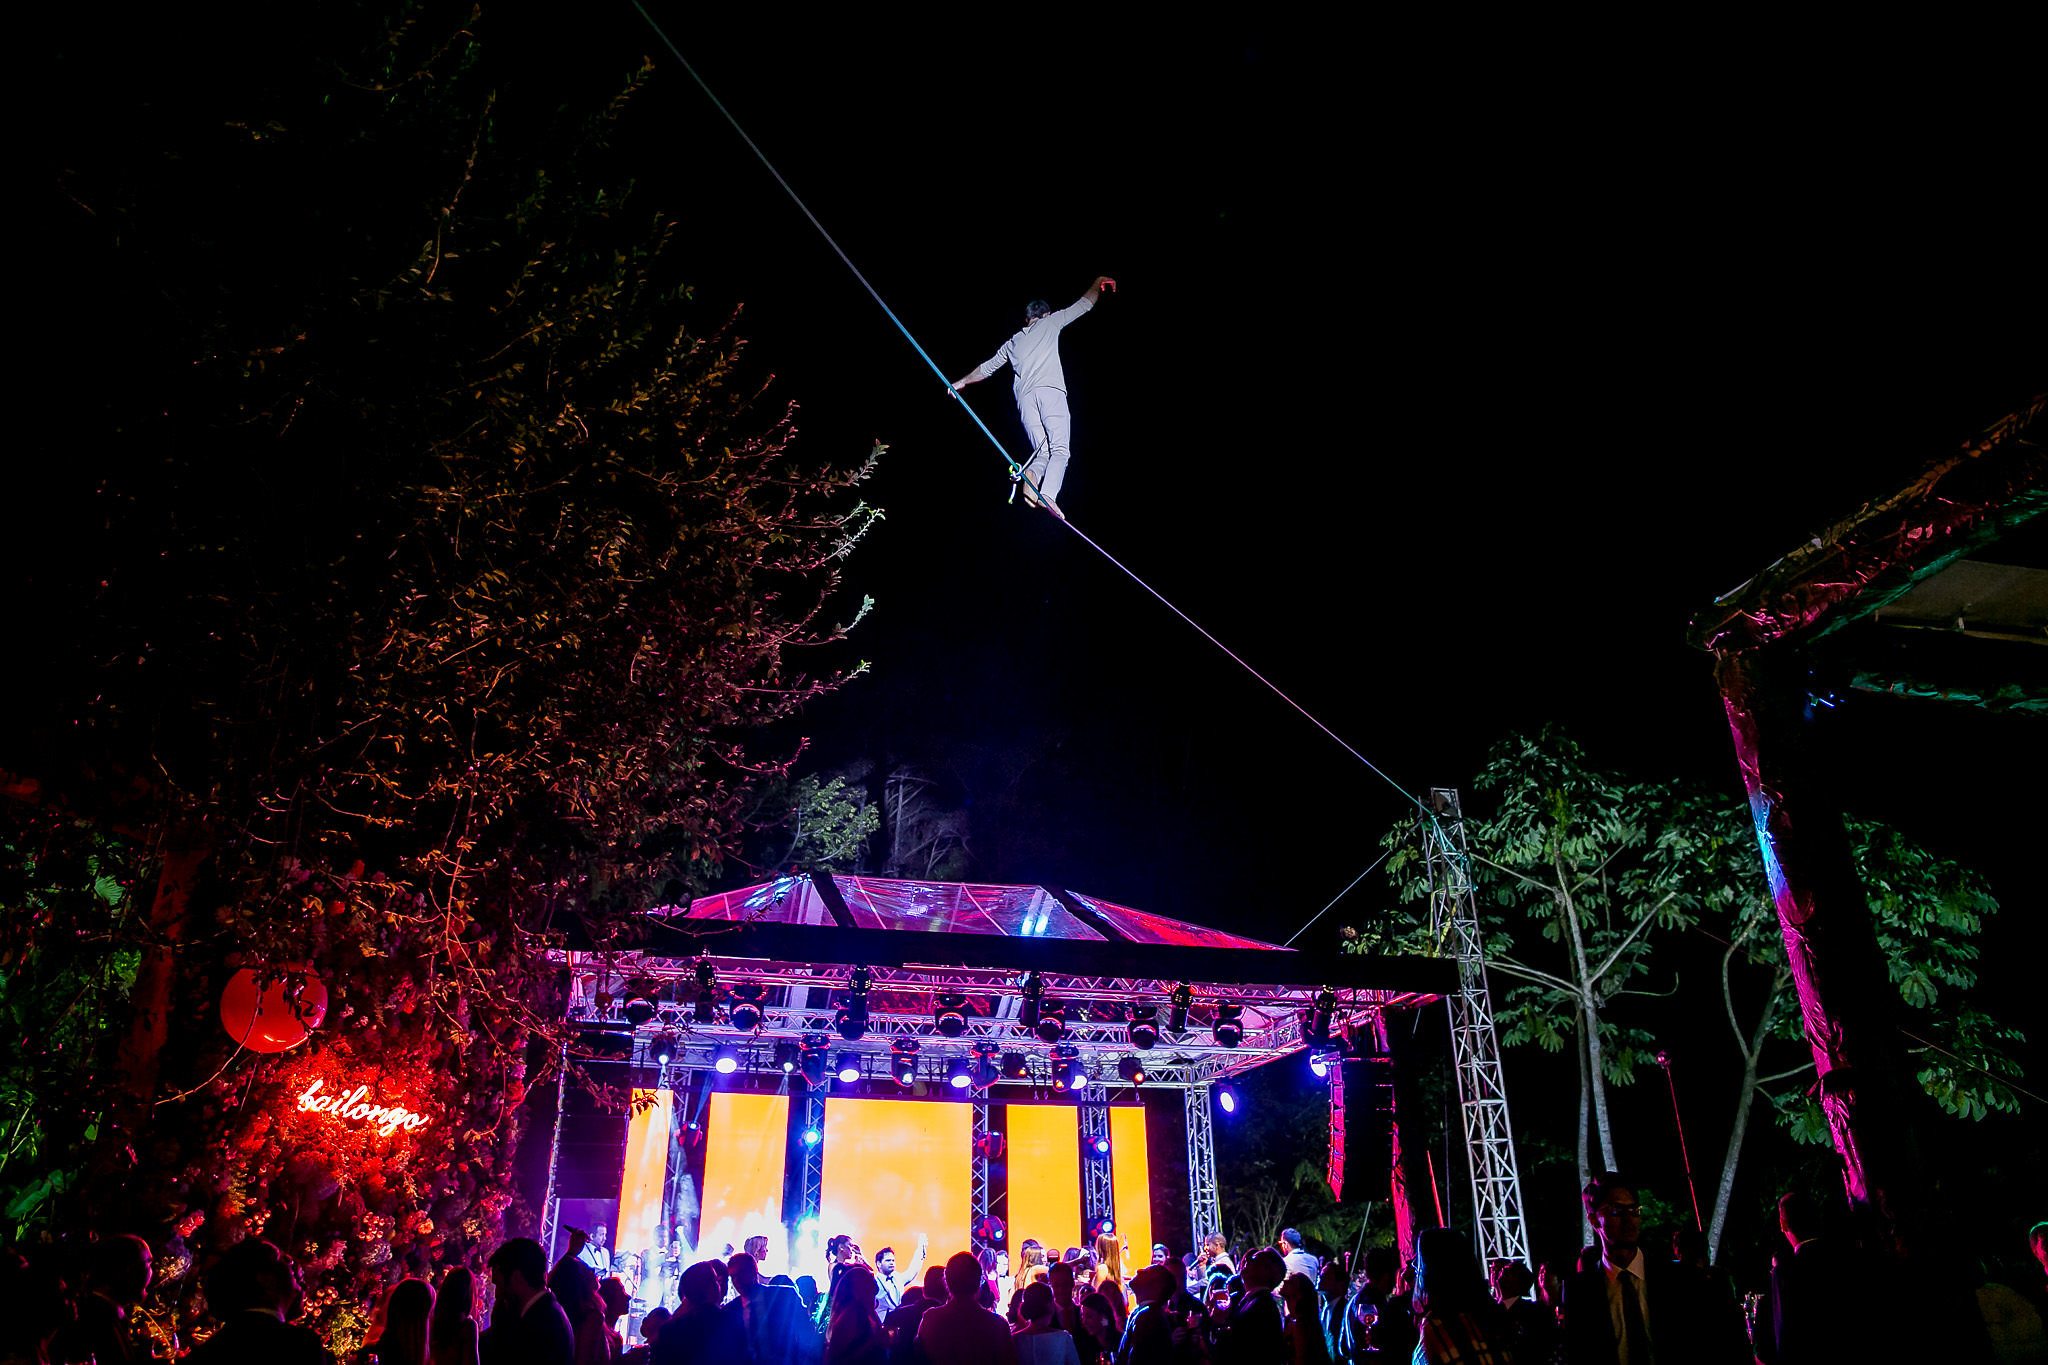 Costa Rica Wedding, circus workshop atelier taller ecole school suisse schweiz switzerland Slackline Lyell Grunberg show performance spectacle Highline trickline (6).jpg